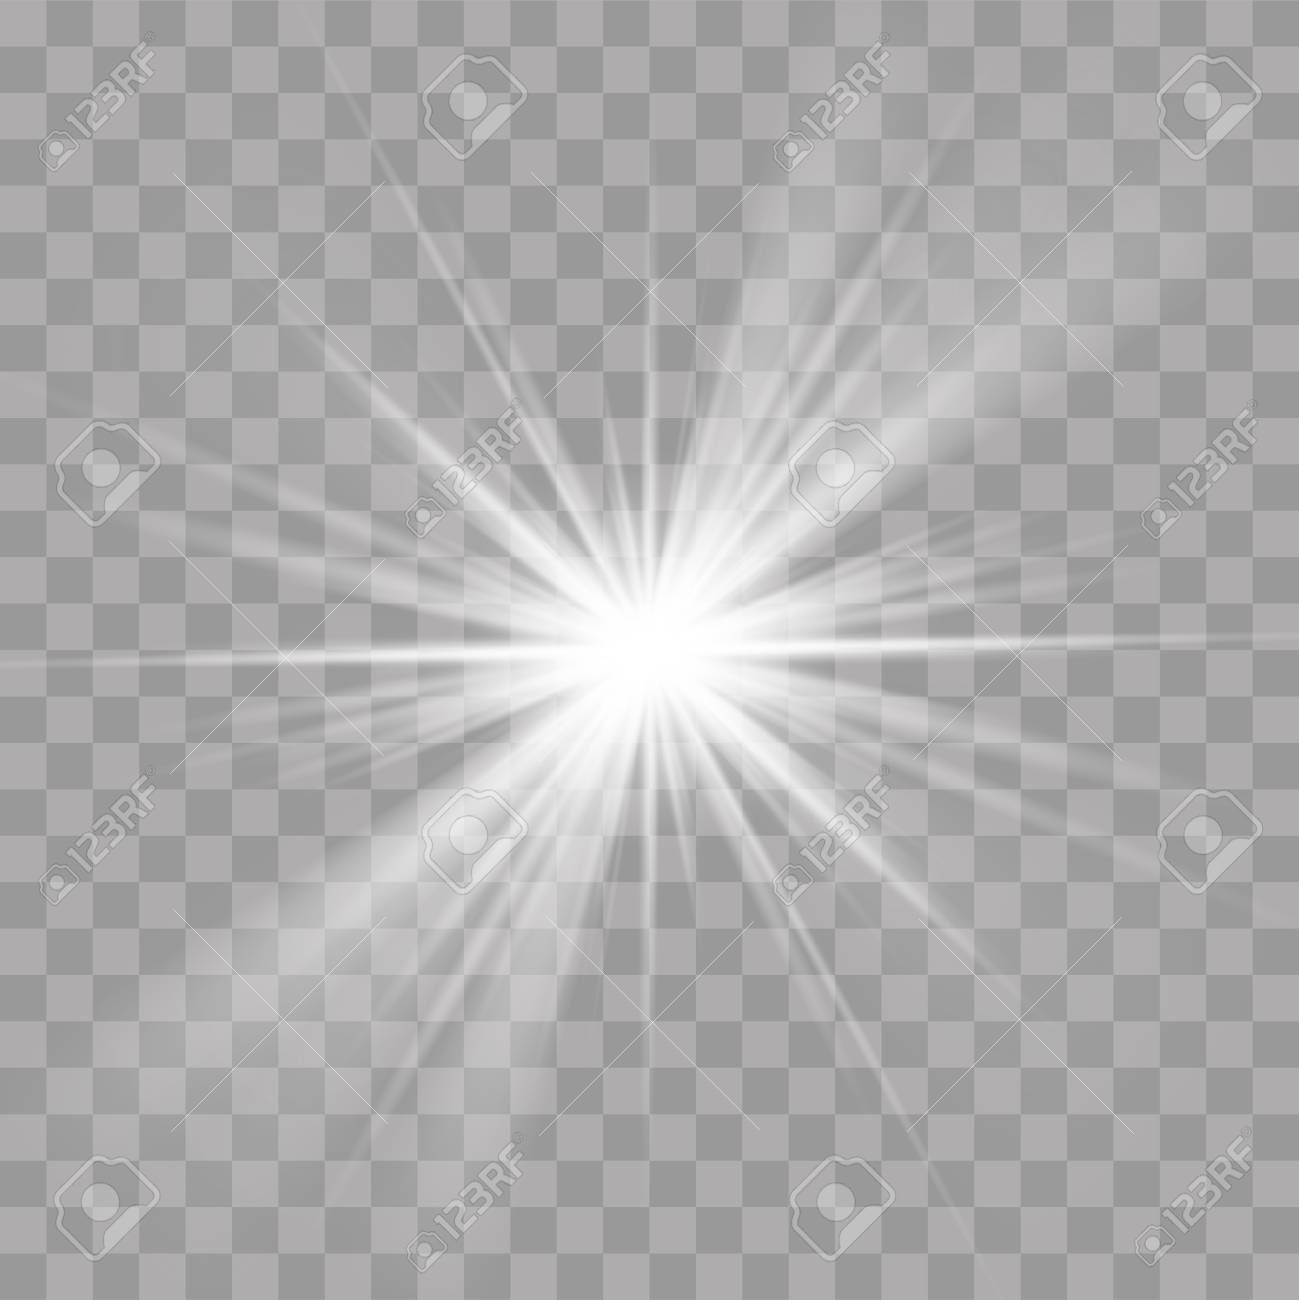 Light Rays Transparent - Light Rays Sun Or Star Shine Flash Radiance Effect. Vector Bright ...